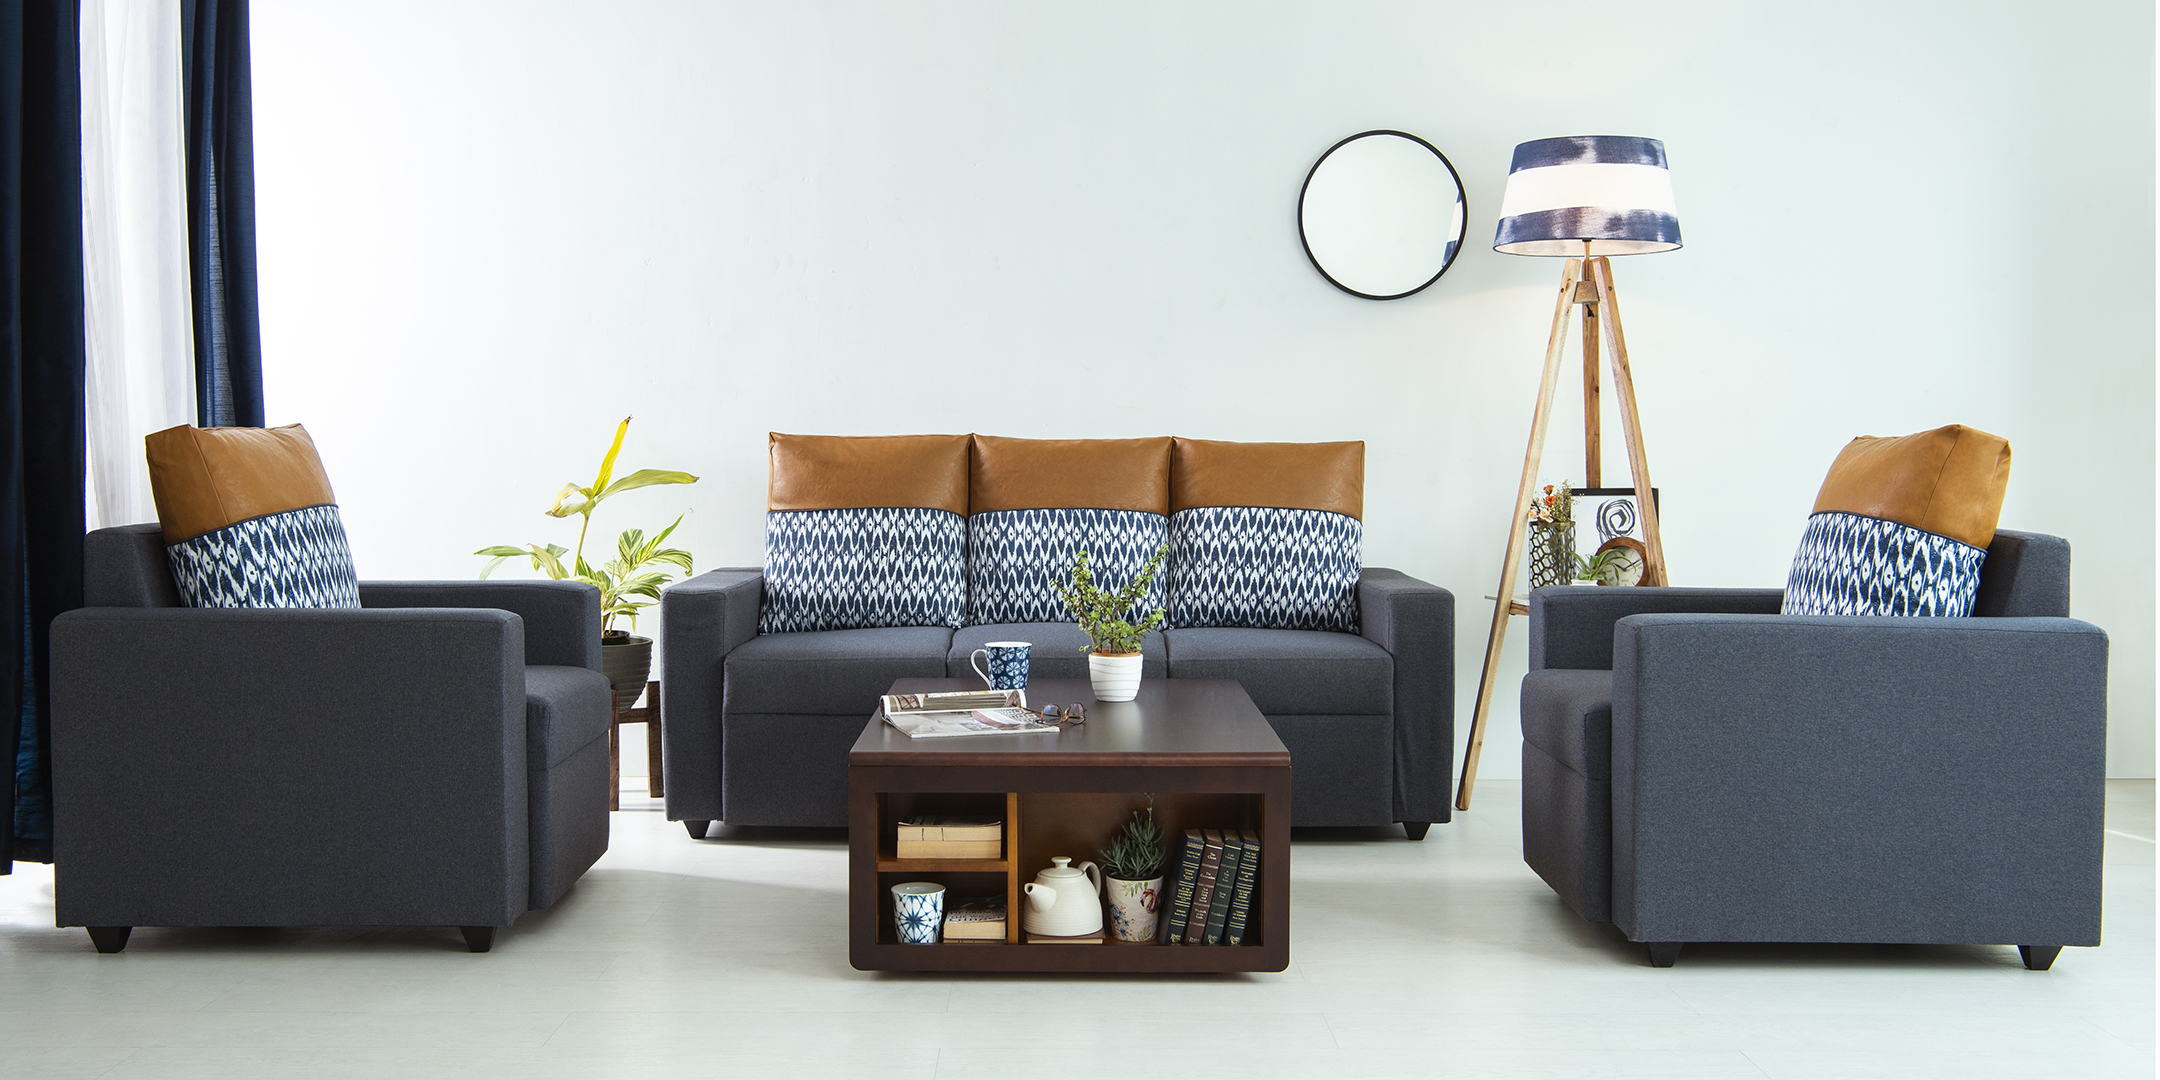 Design Perfect Holiday Home- Furniture that lights your room